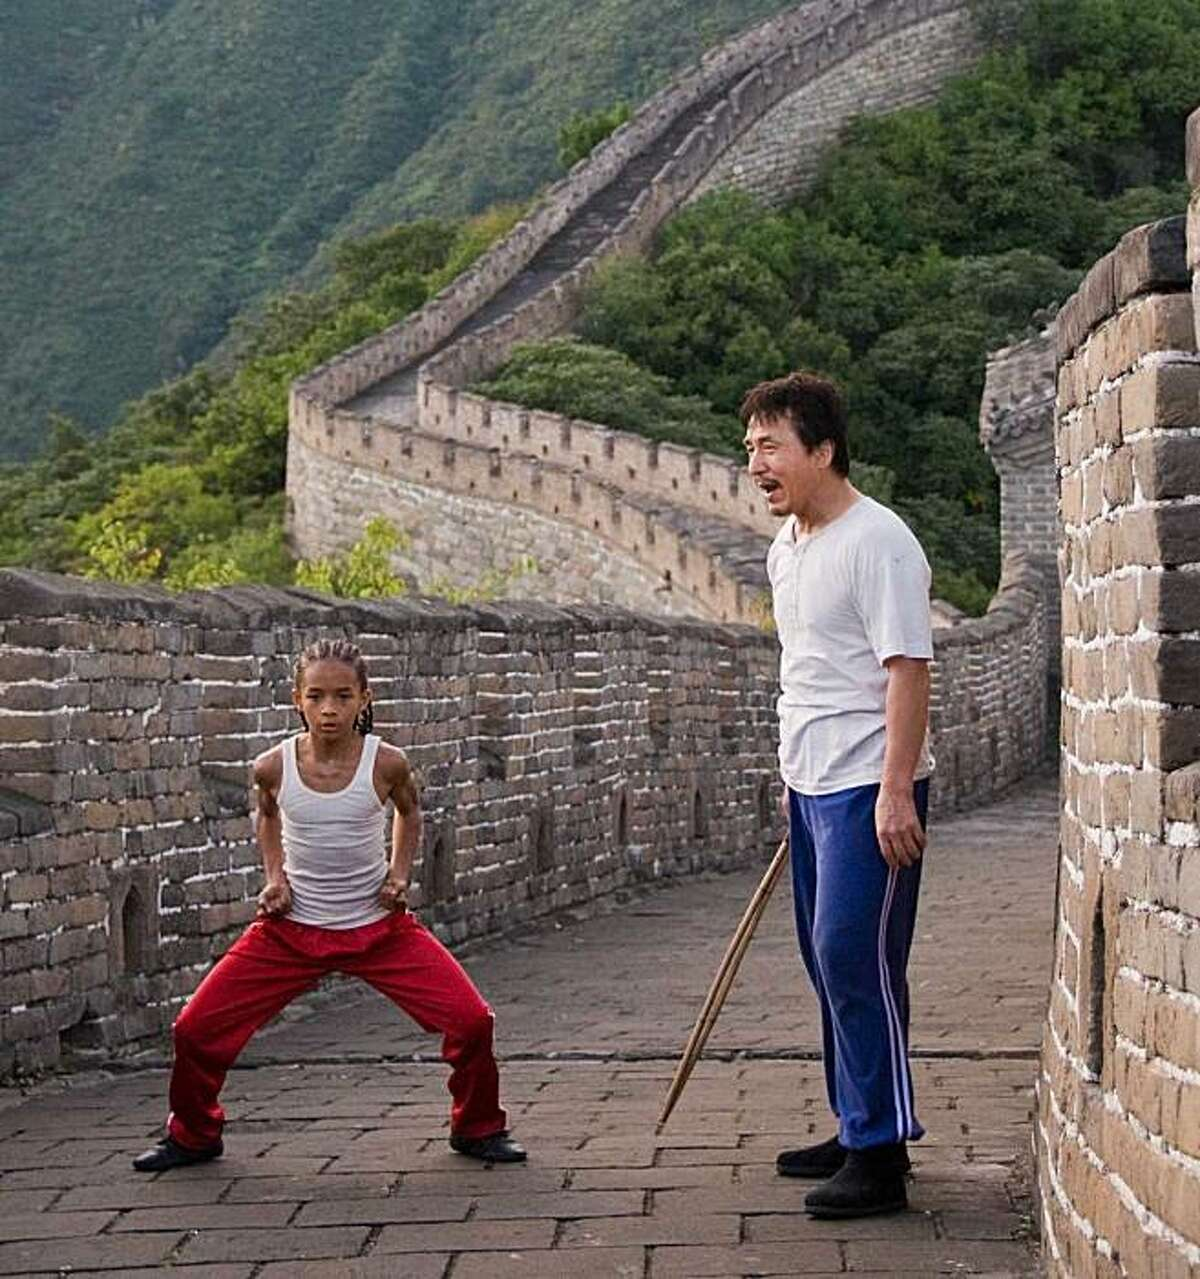 """Jaden Smith as 'Dre' and Jackie Chan as 'Mr. Han' on the Great Wall of China in """"The Karate Kid."""" Jaden Smith as """"Dre"""" and Jackie Chan as """"Mr. Han"""" on the Great Wall of China in Columbia Pictures' KARATE KID."""